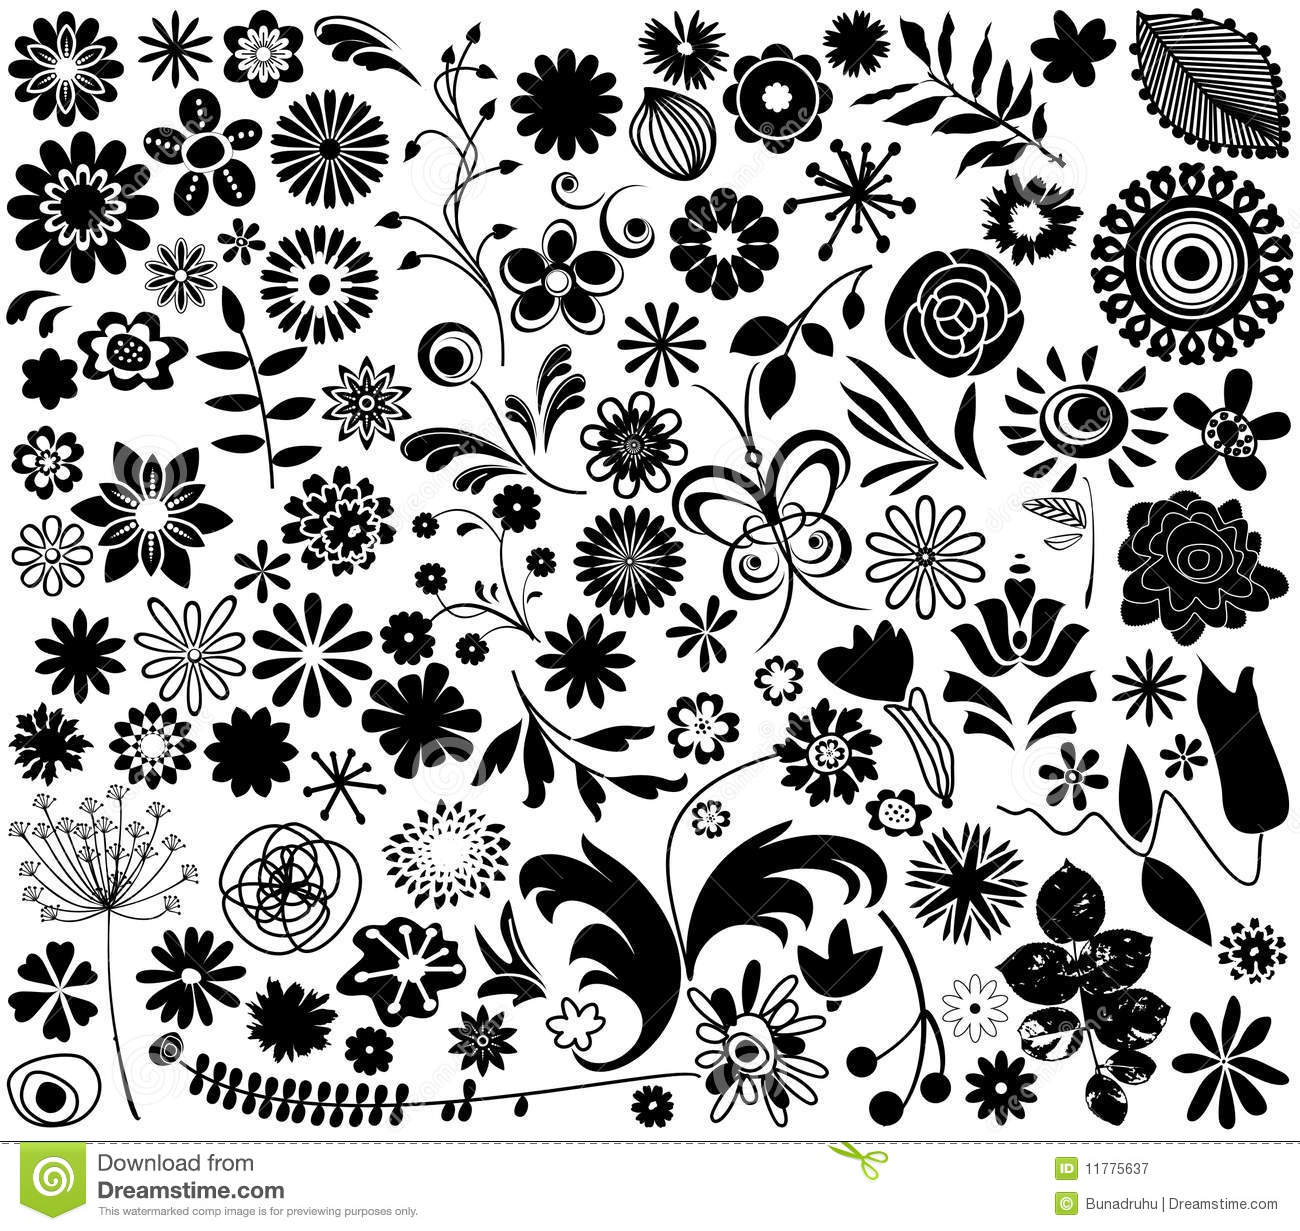 Black Flower Silhouette Pattern Royalty Free Stock Images: Vector Flower Elements Stock Vector. Illustration Of Draw